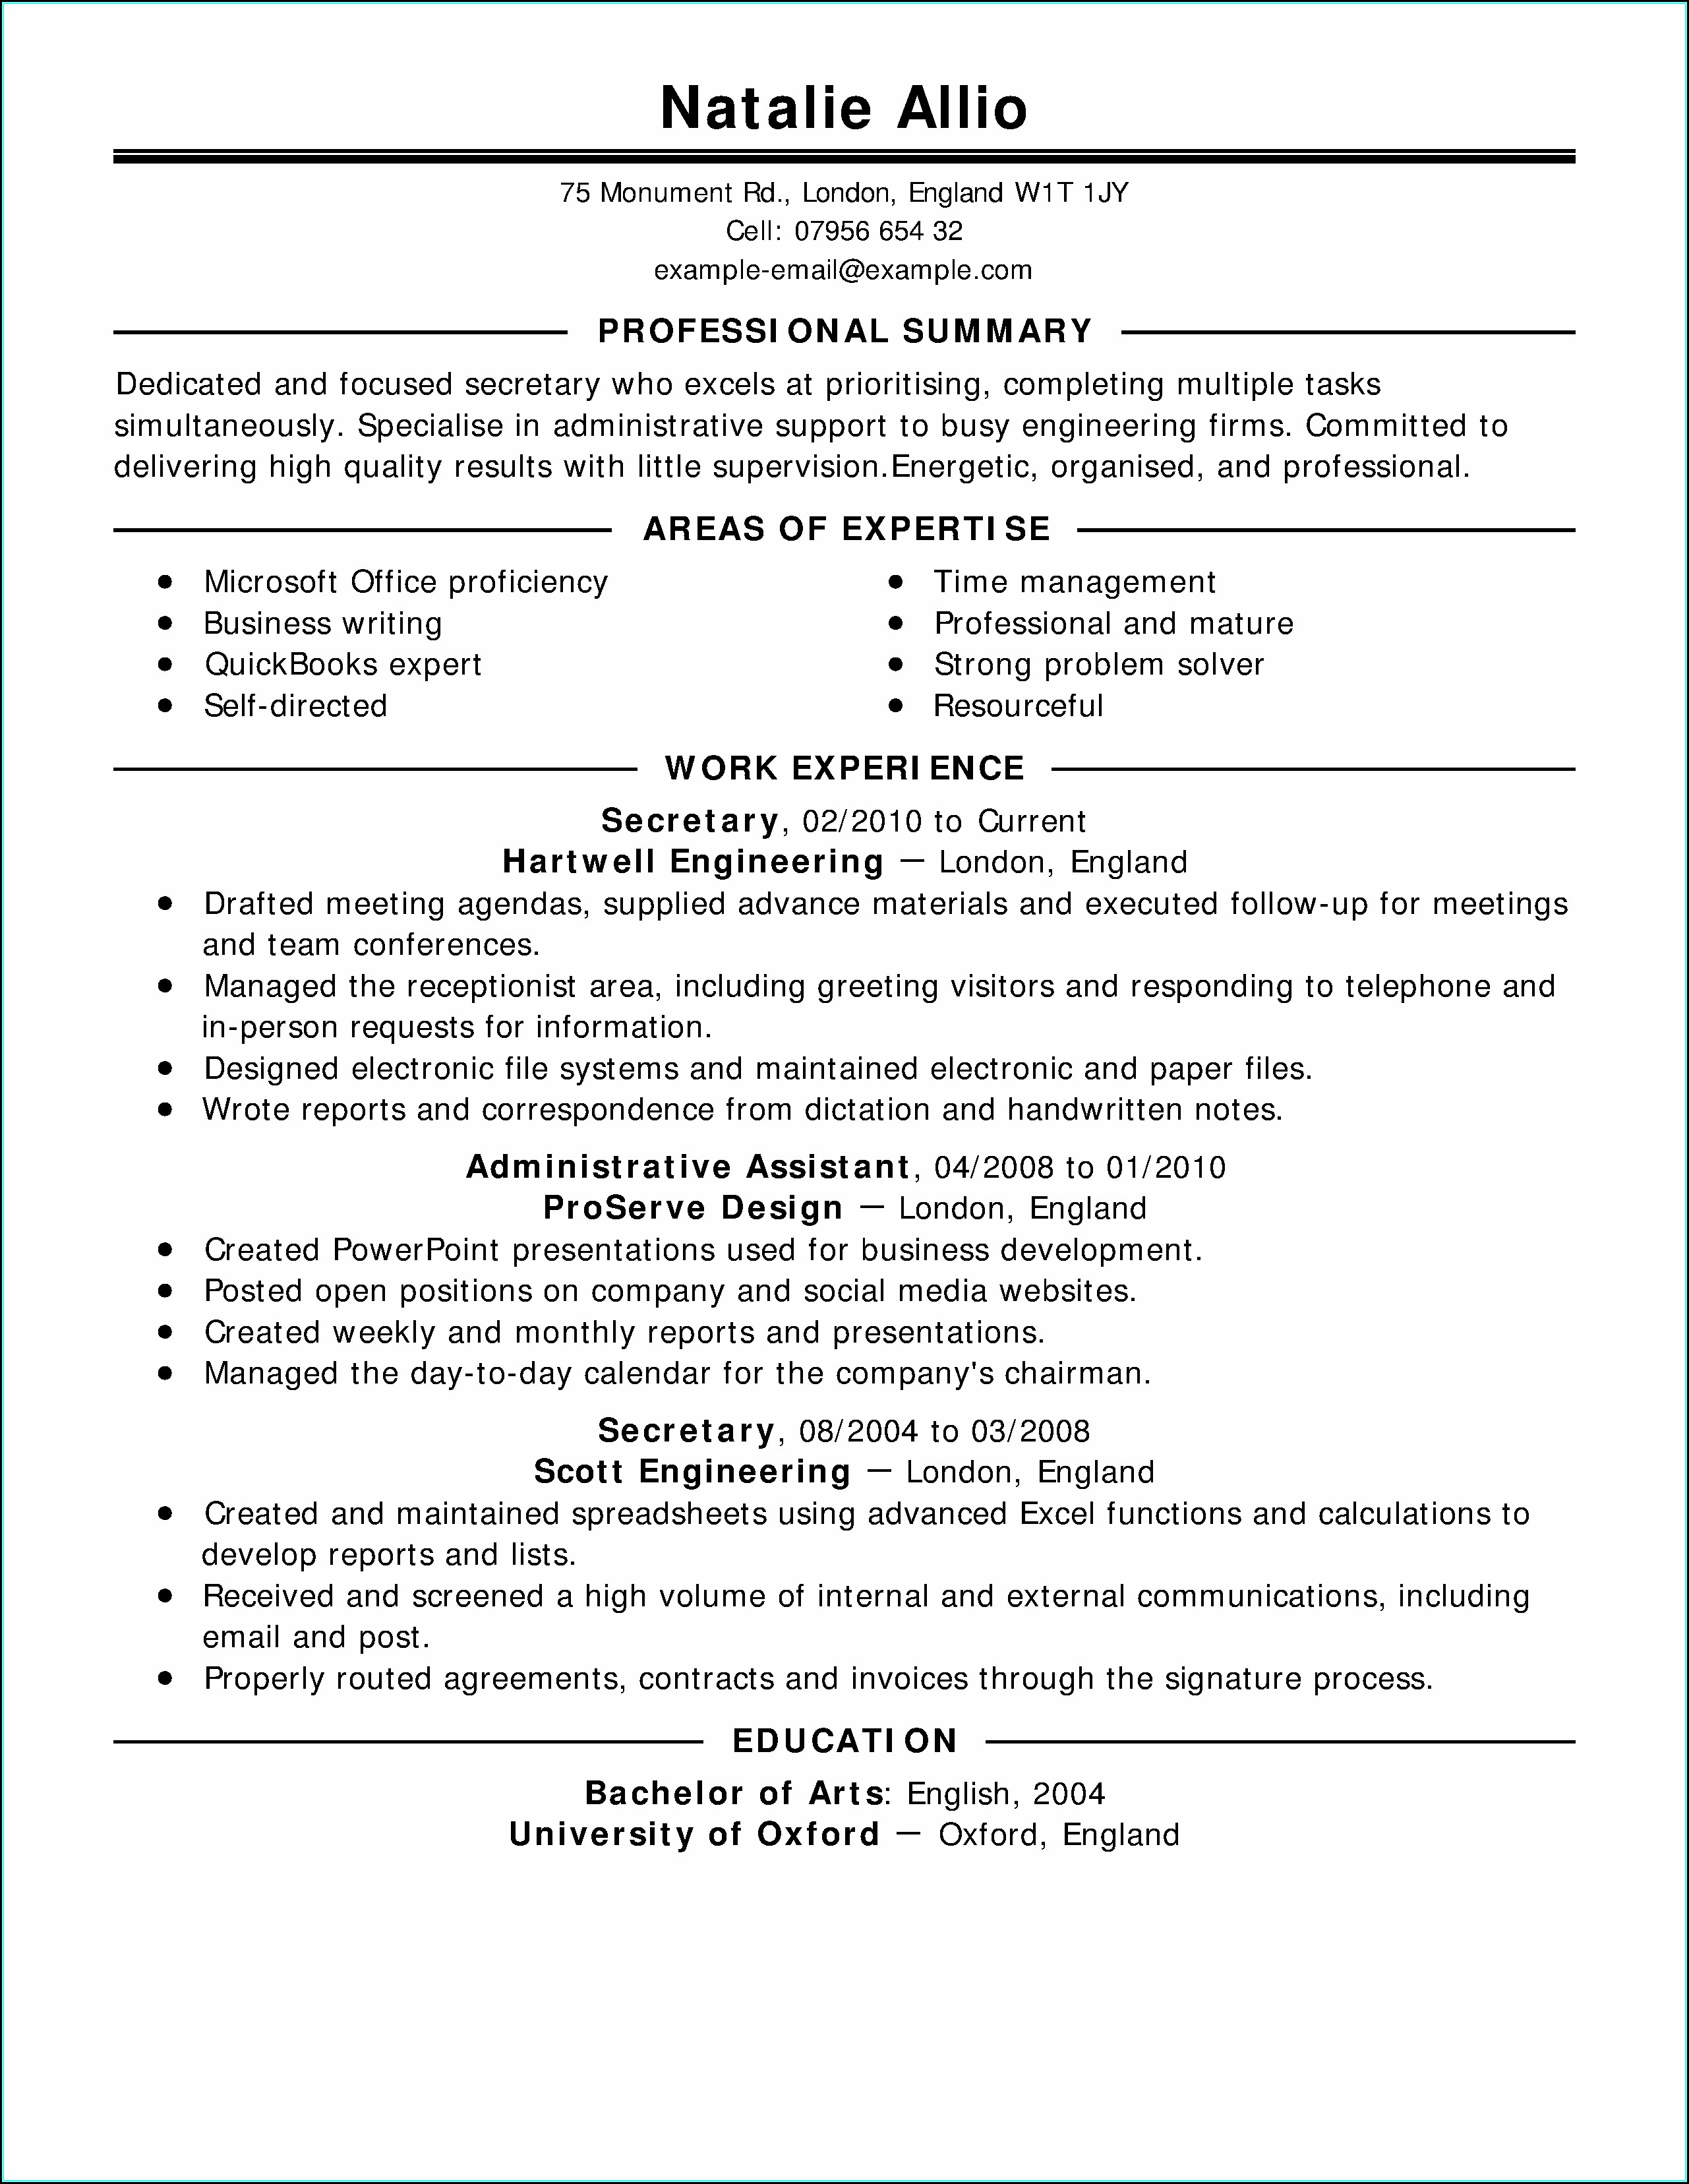 Resume Examples For Military To Civilian